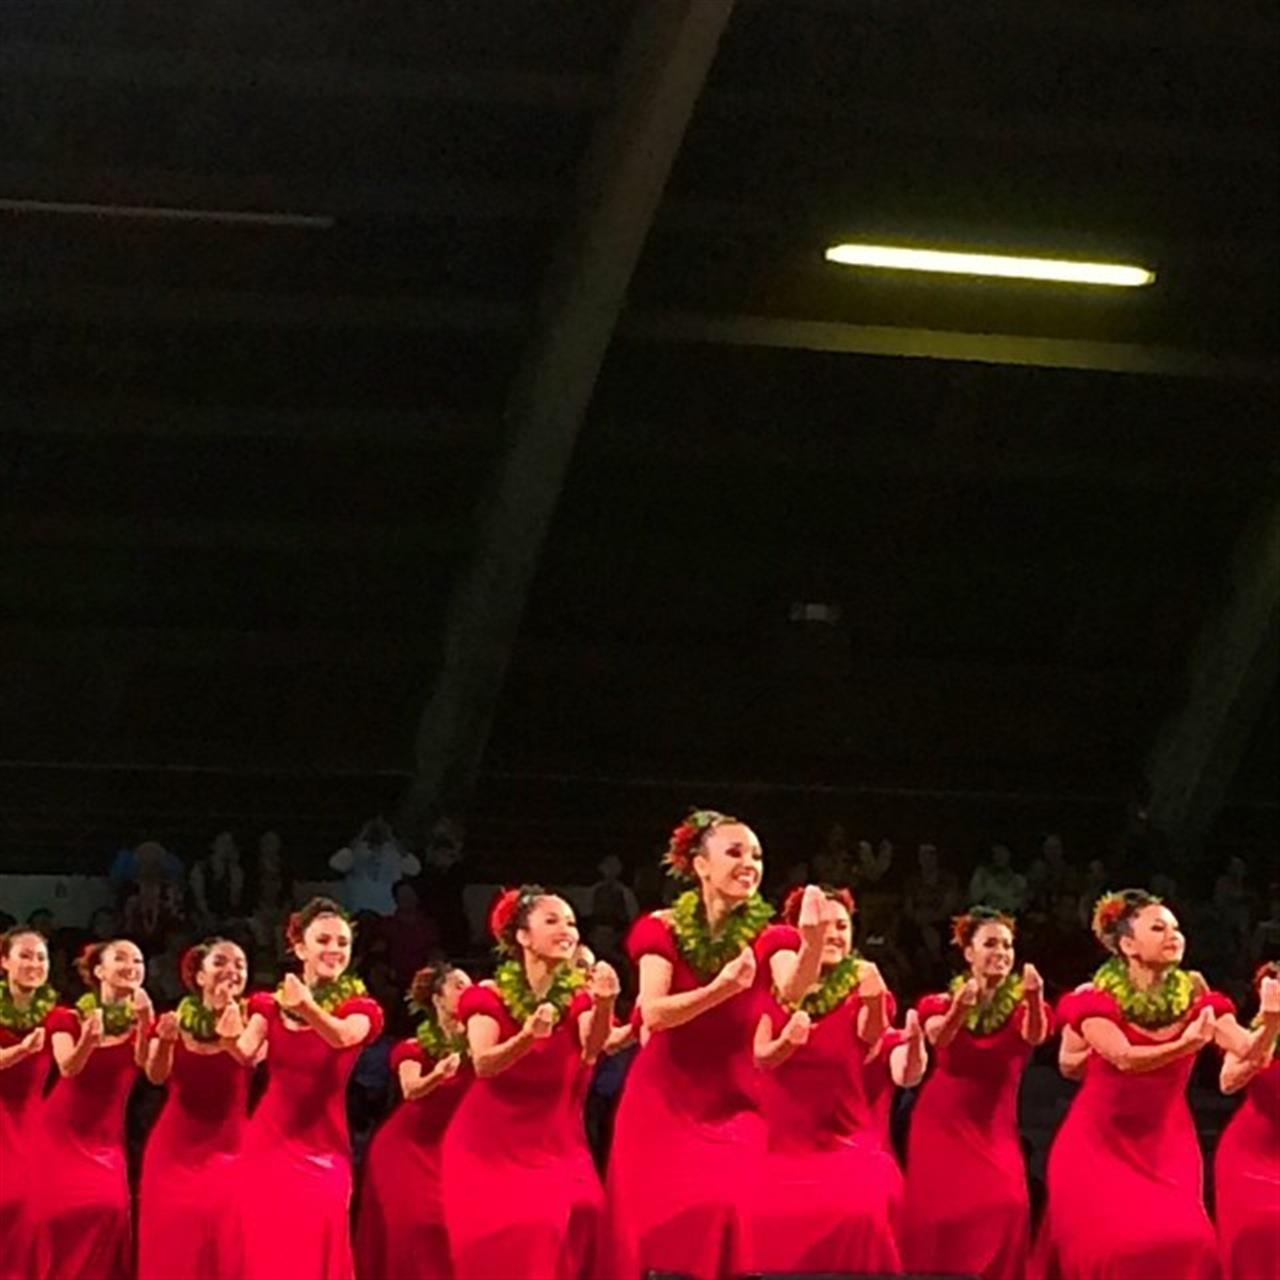 So many incredible performances tonight! ?????? I would hate to be a judge! #MM2015 #hula #MerrieMonarch #hawaiilife #leadingRElocal